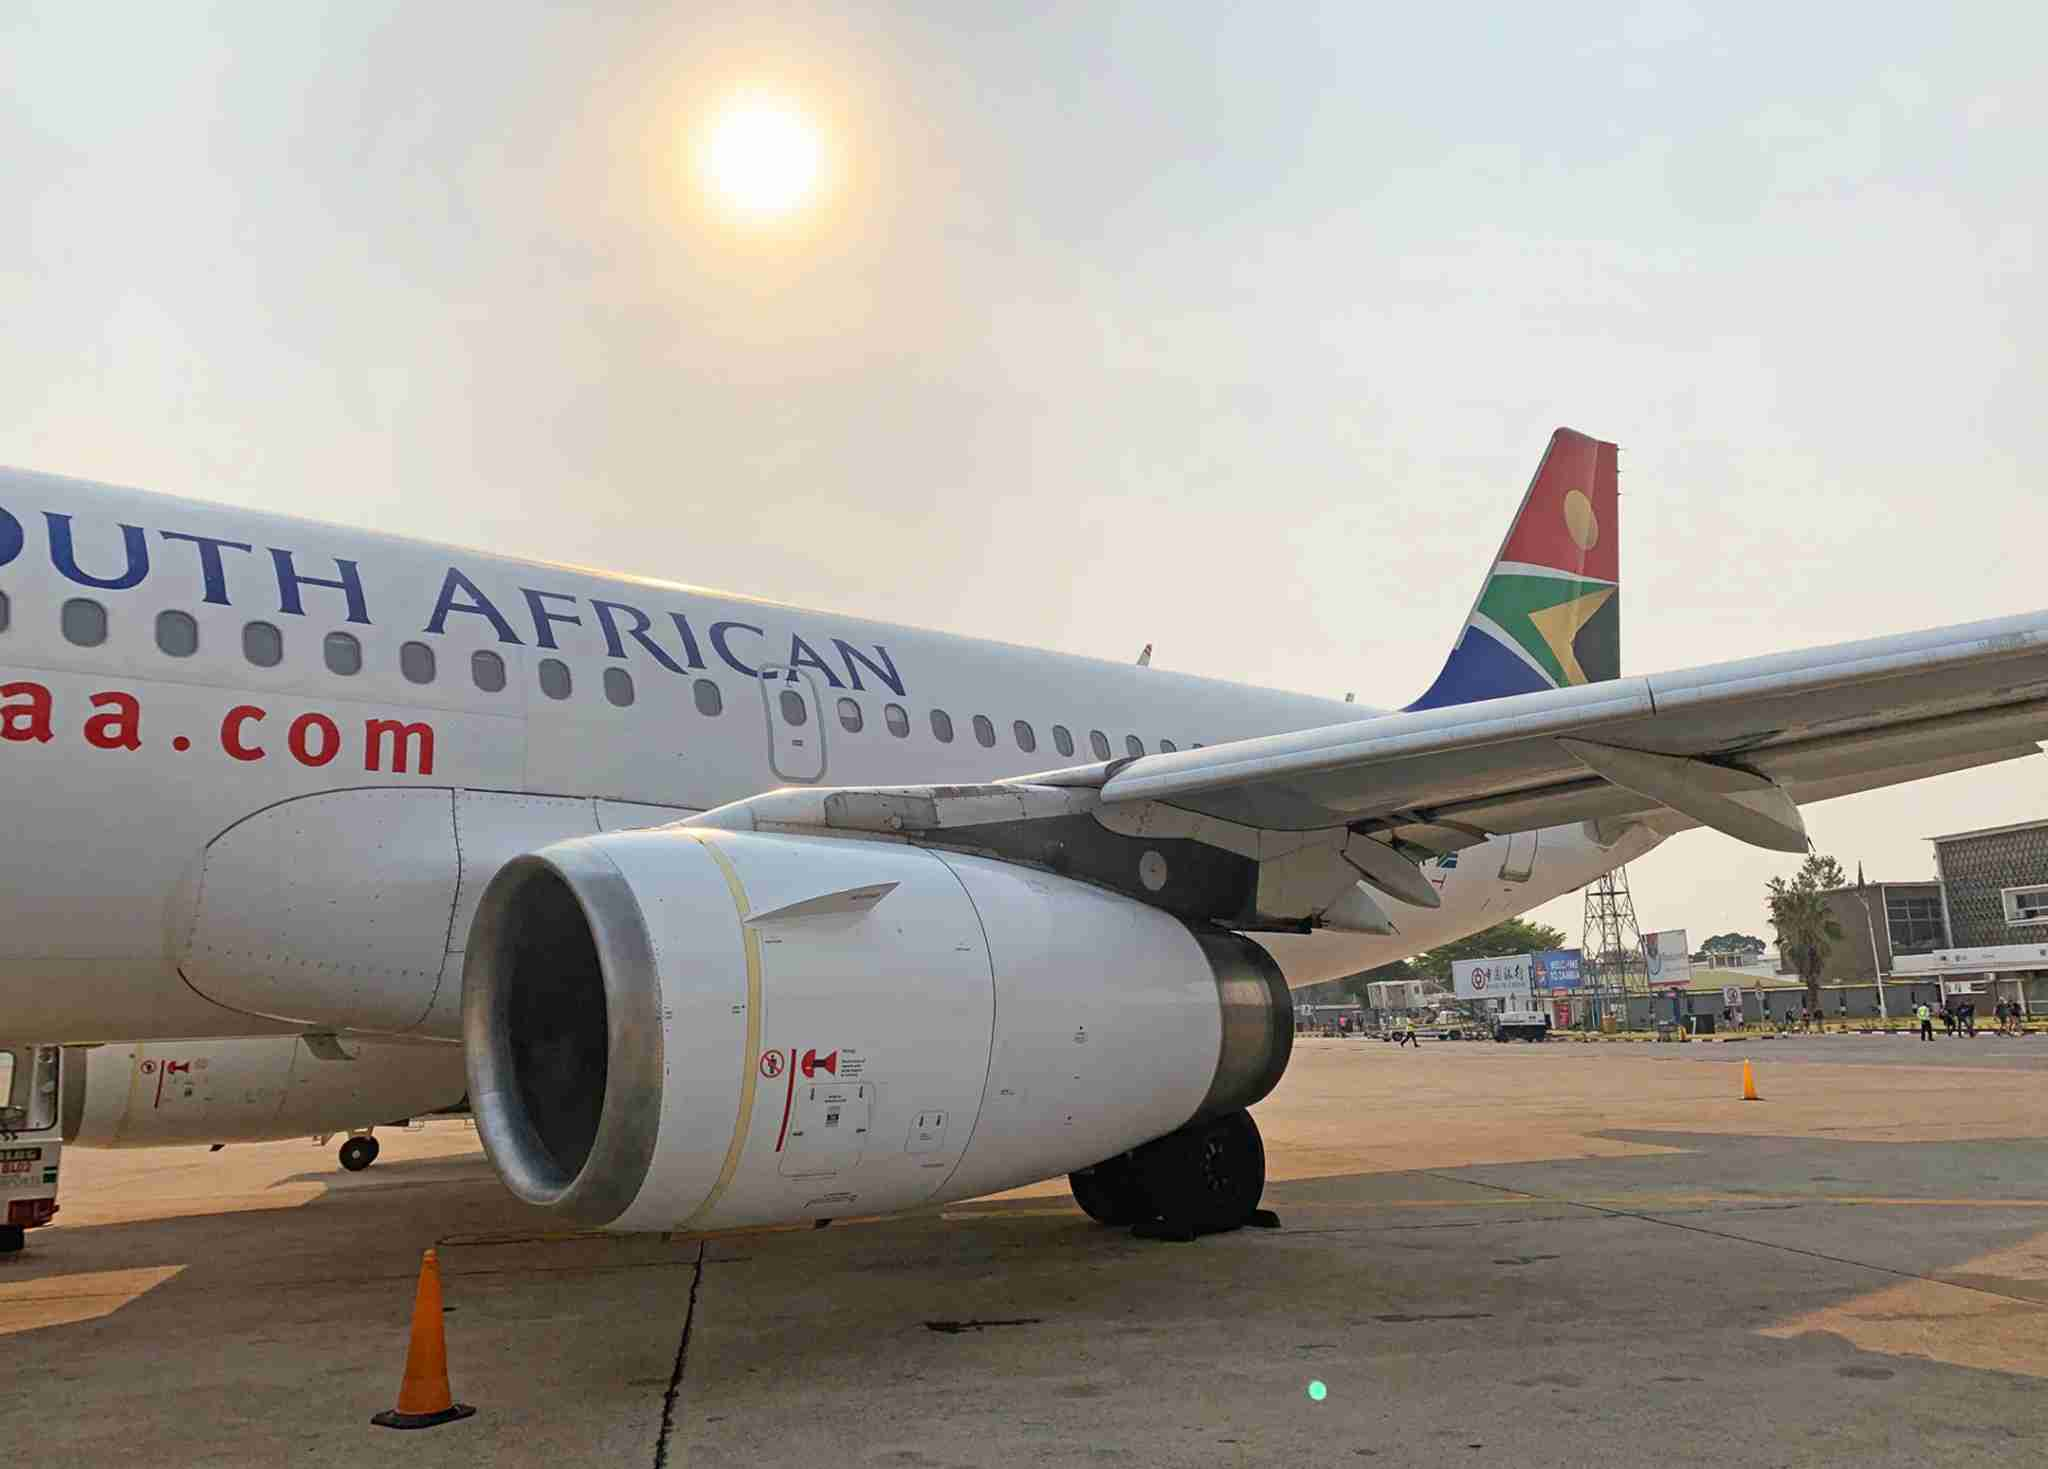 South African Airways Airbus A319 in Lusaka (Photo by Patrick Smith)